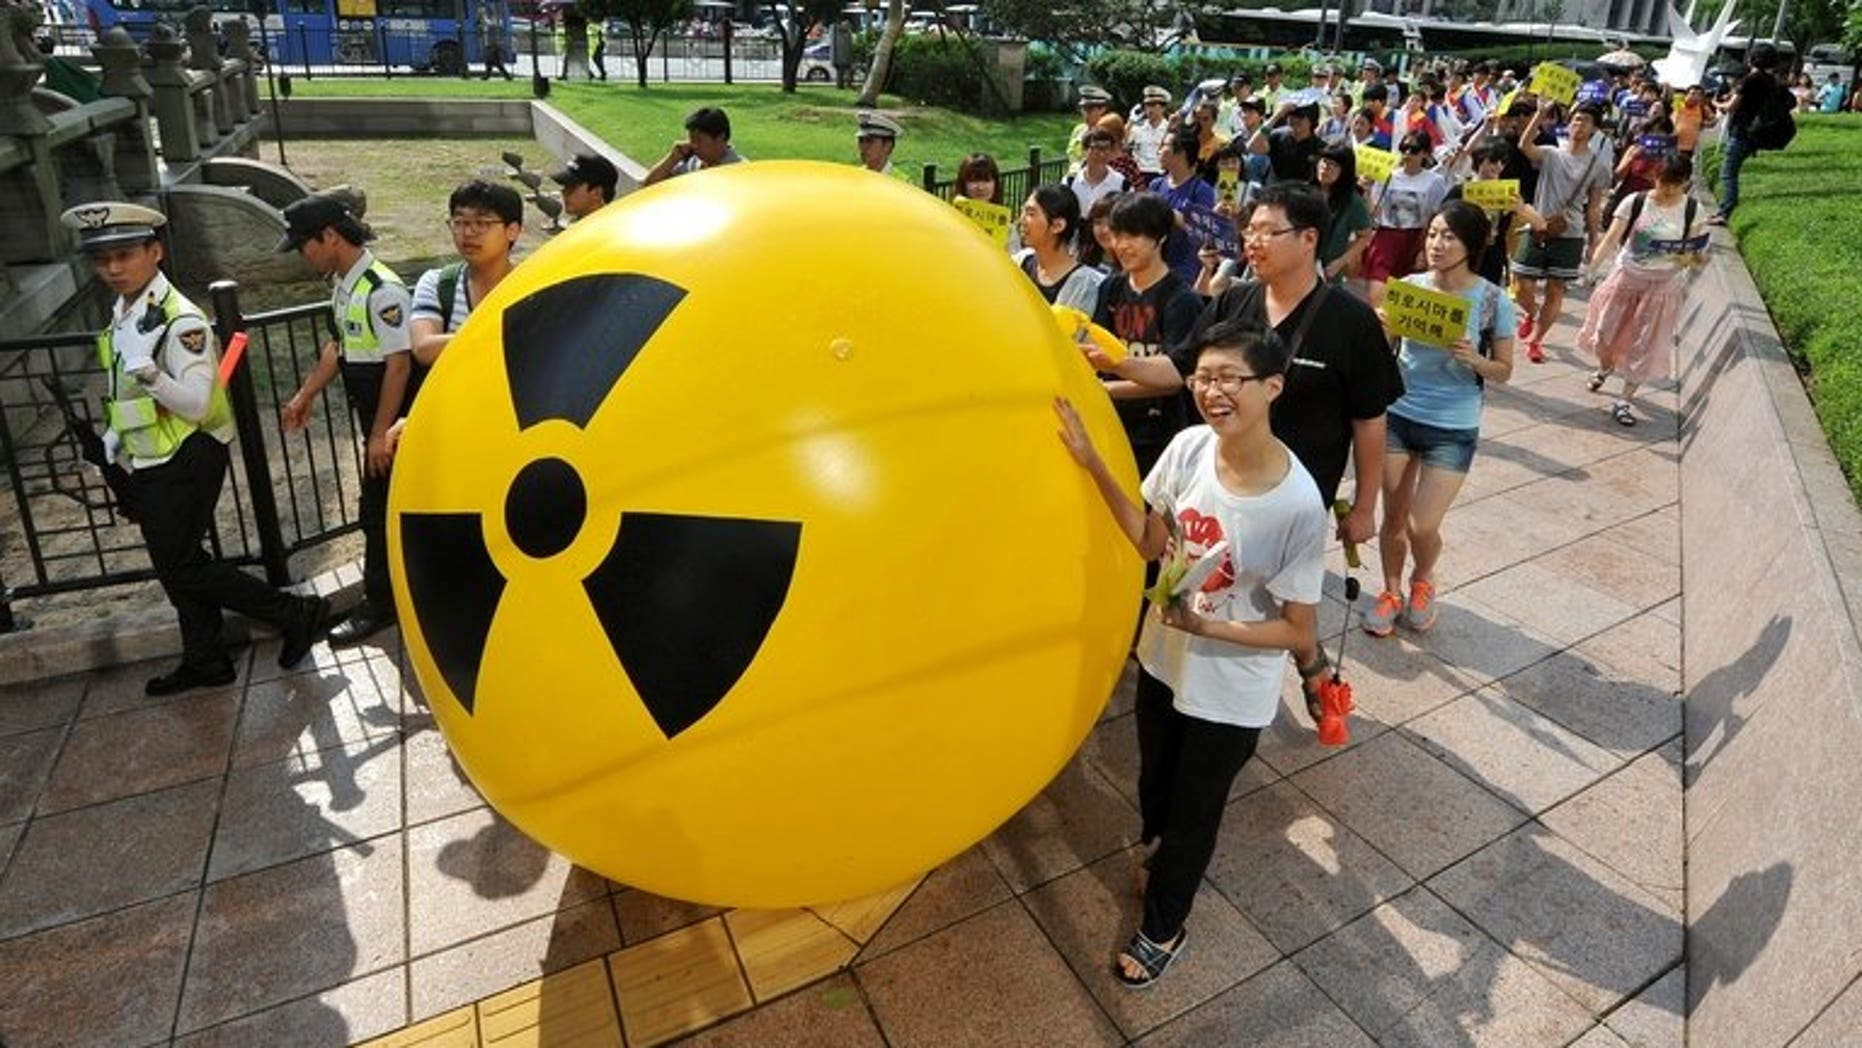 South Korean activists march while rolling a large balloon with a radioactivity warning sign during an anti-nuclear protest in Seoul on August 6, 2013. A former deputy minister has been charged with taking bribes as part of a corruption probe into South Korea's nuclear industry which has already indicted nearly 100 people, prosecutors said Tuesday.